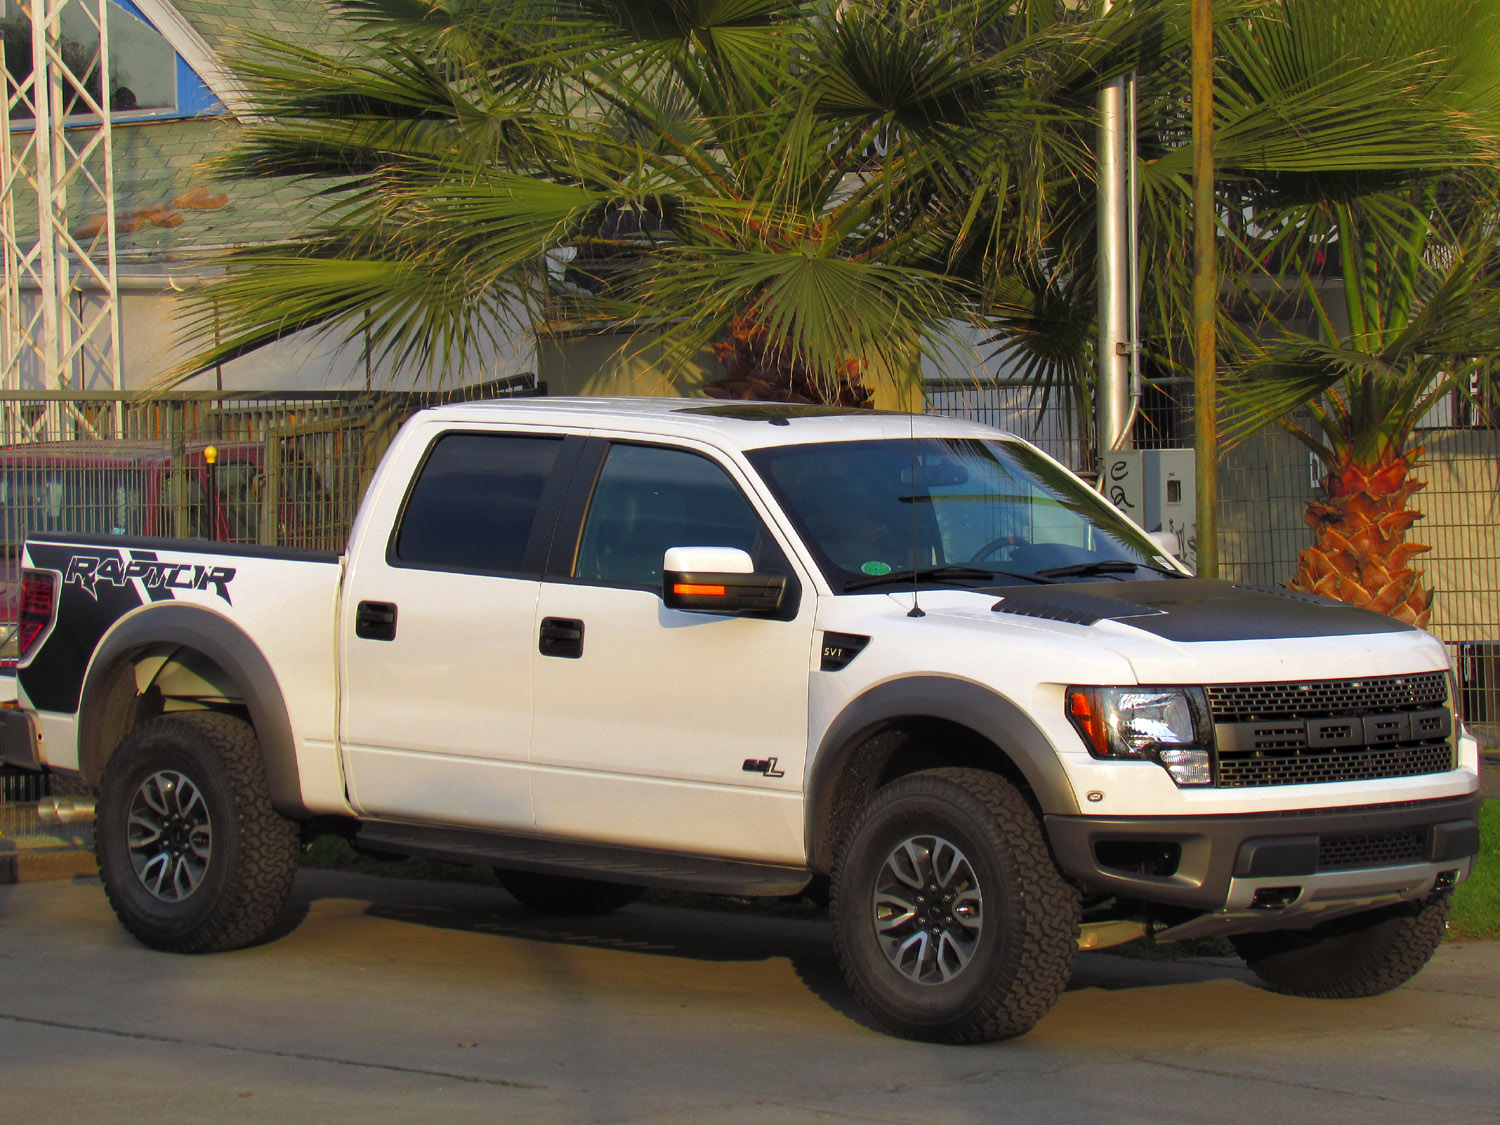 fileford f 150 svt raptor supercrew 2012 7853957930jpg - 2012 Ford F 150 Svt Raptor